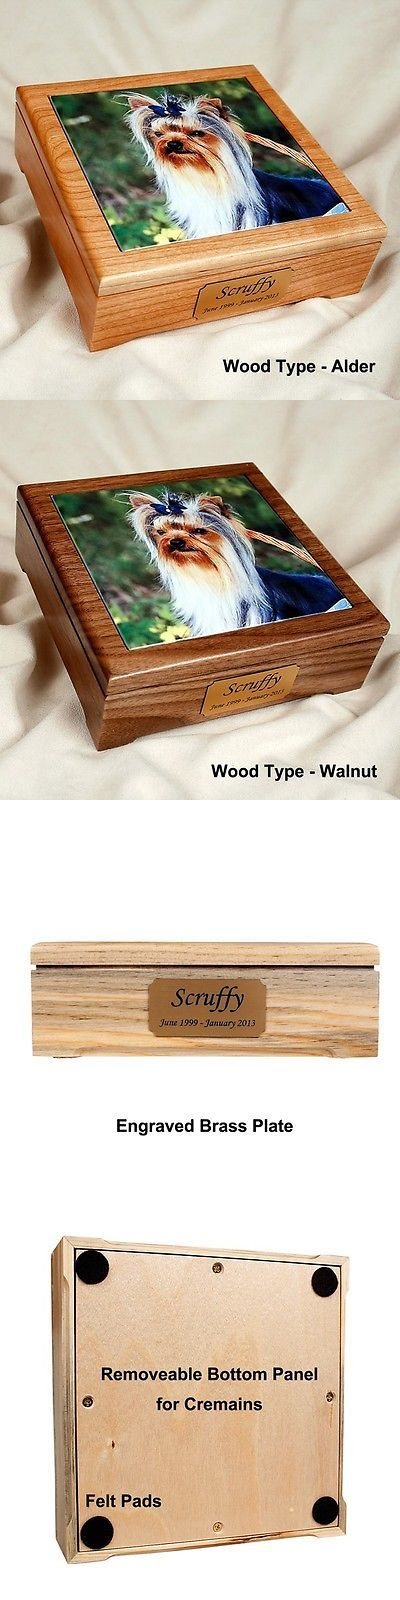 Pet Memorials and Urns 116391: Pet Cremation Urn With A Photo Tile Insert BUY IT NOW ONLY: $38.95